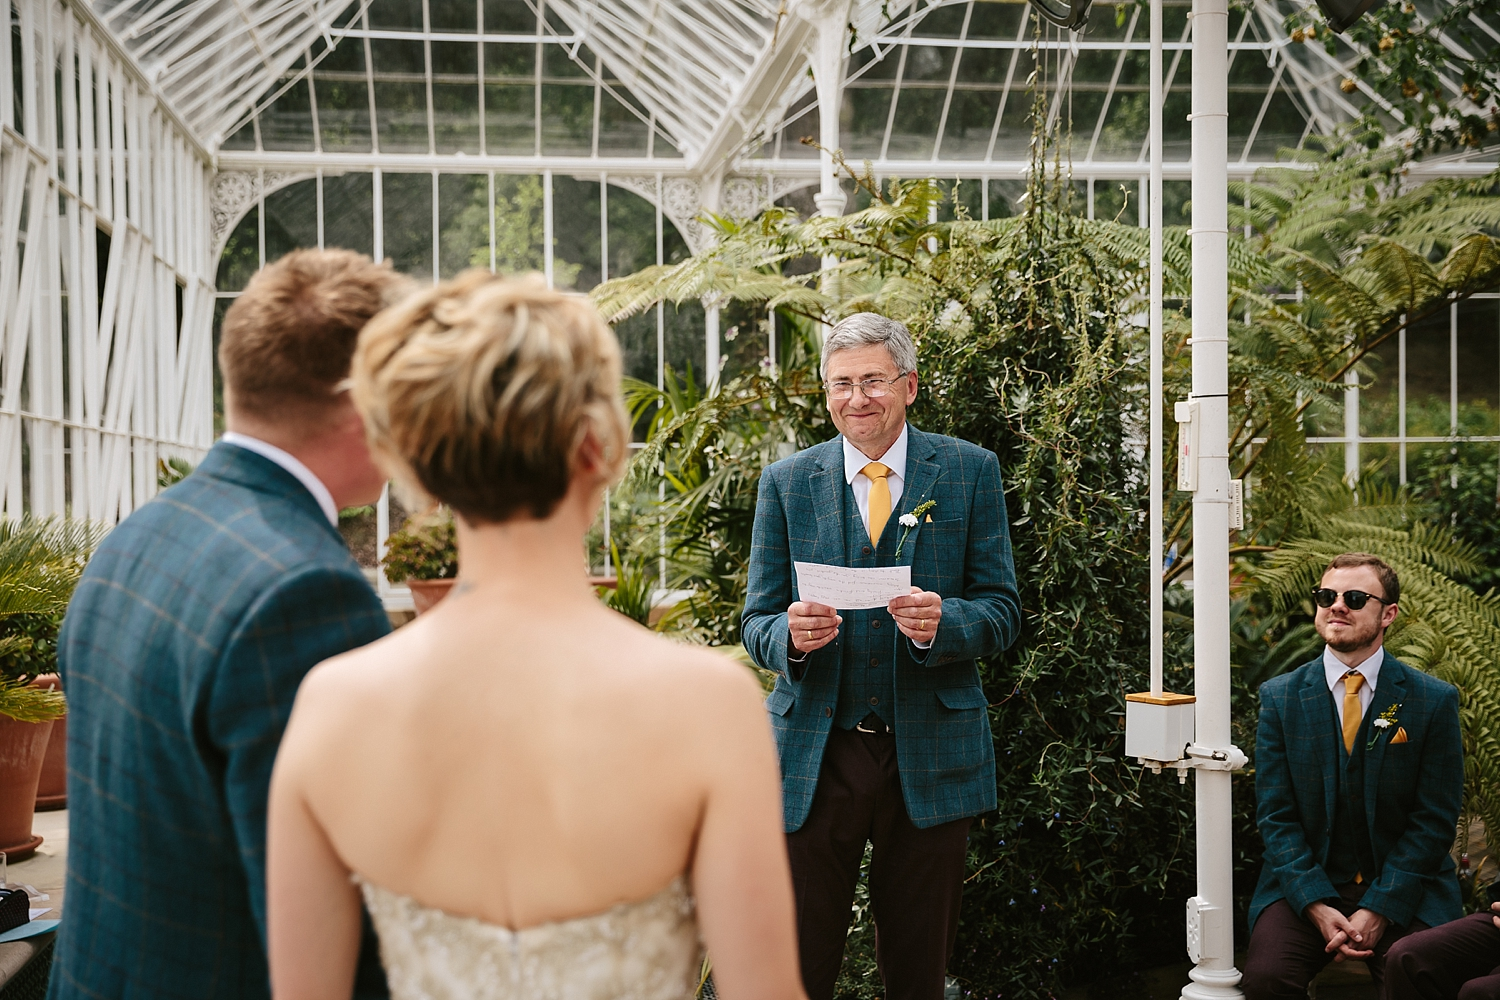 Natlie-Matthew-yorkshire-natural-relaxed-fun-documentary-reportage-candid-wedding-photography-photographer-Derby-Nottingham-Derbyshire-Nottinghamshire-Leicestershire-Lincolnshire-East-Midlands-45.jpg